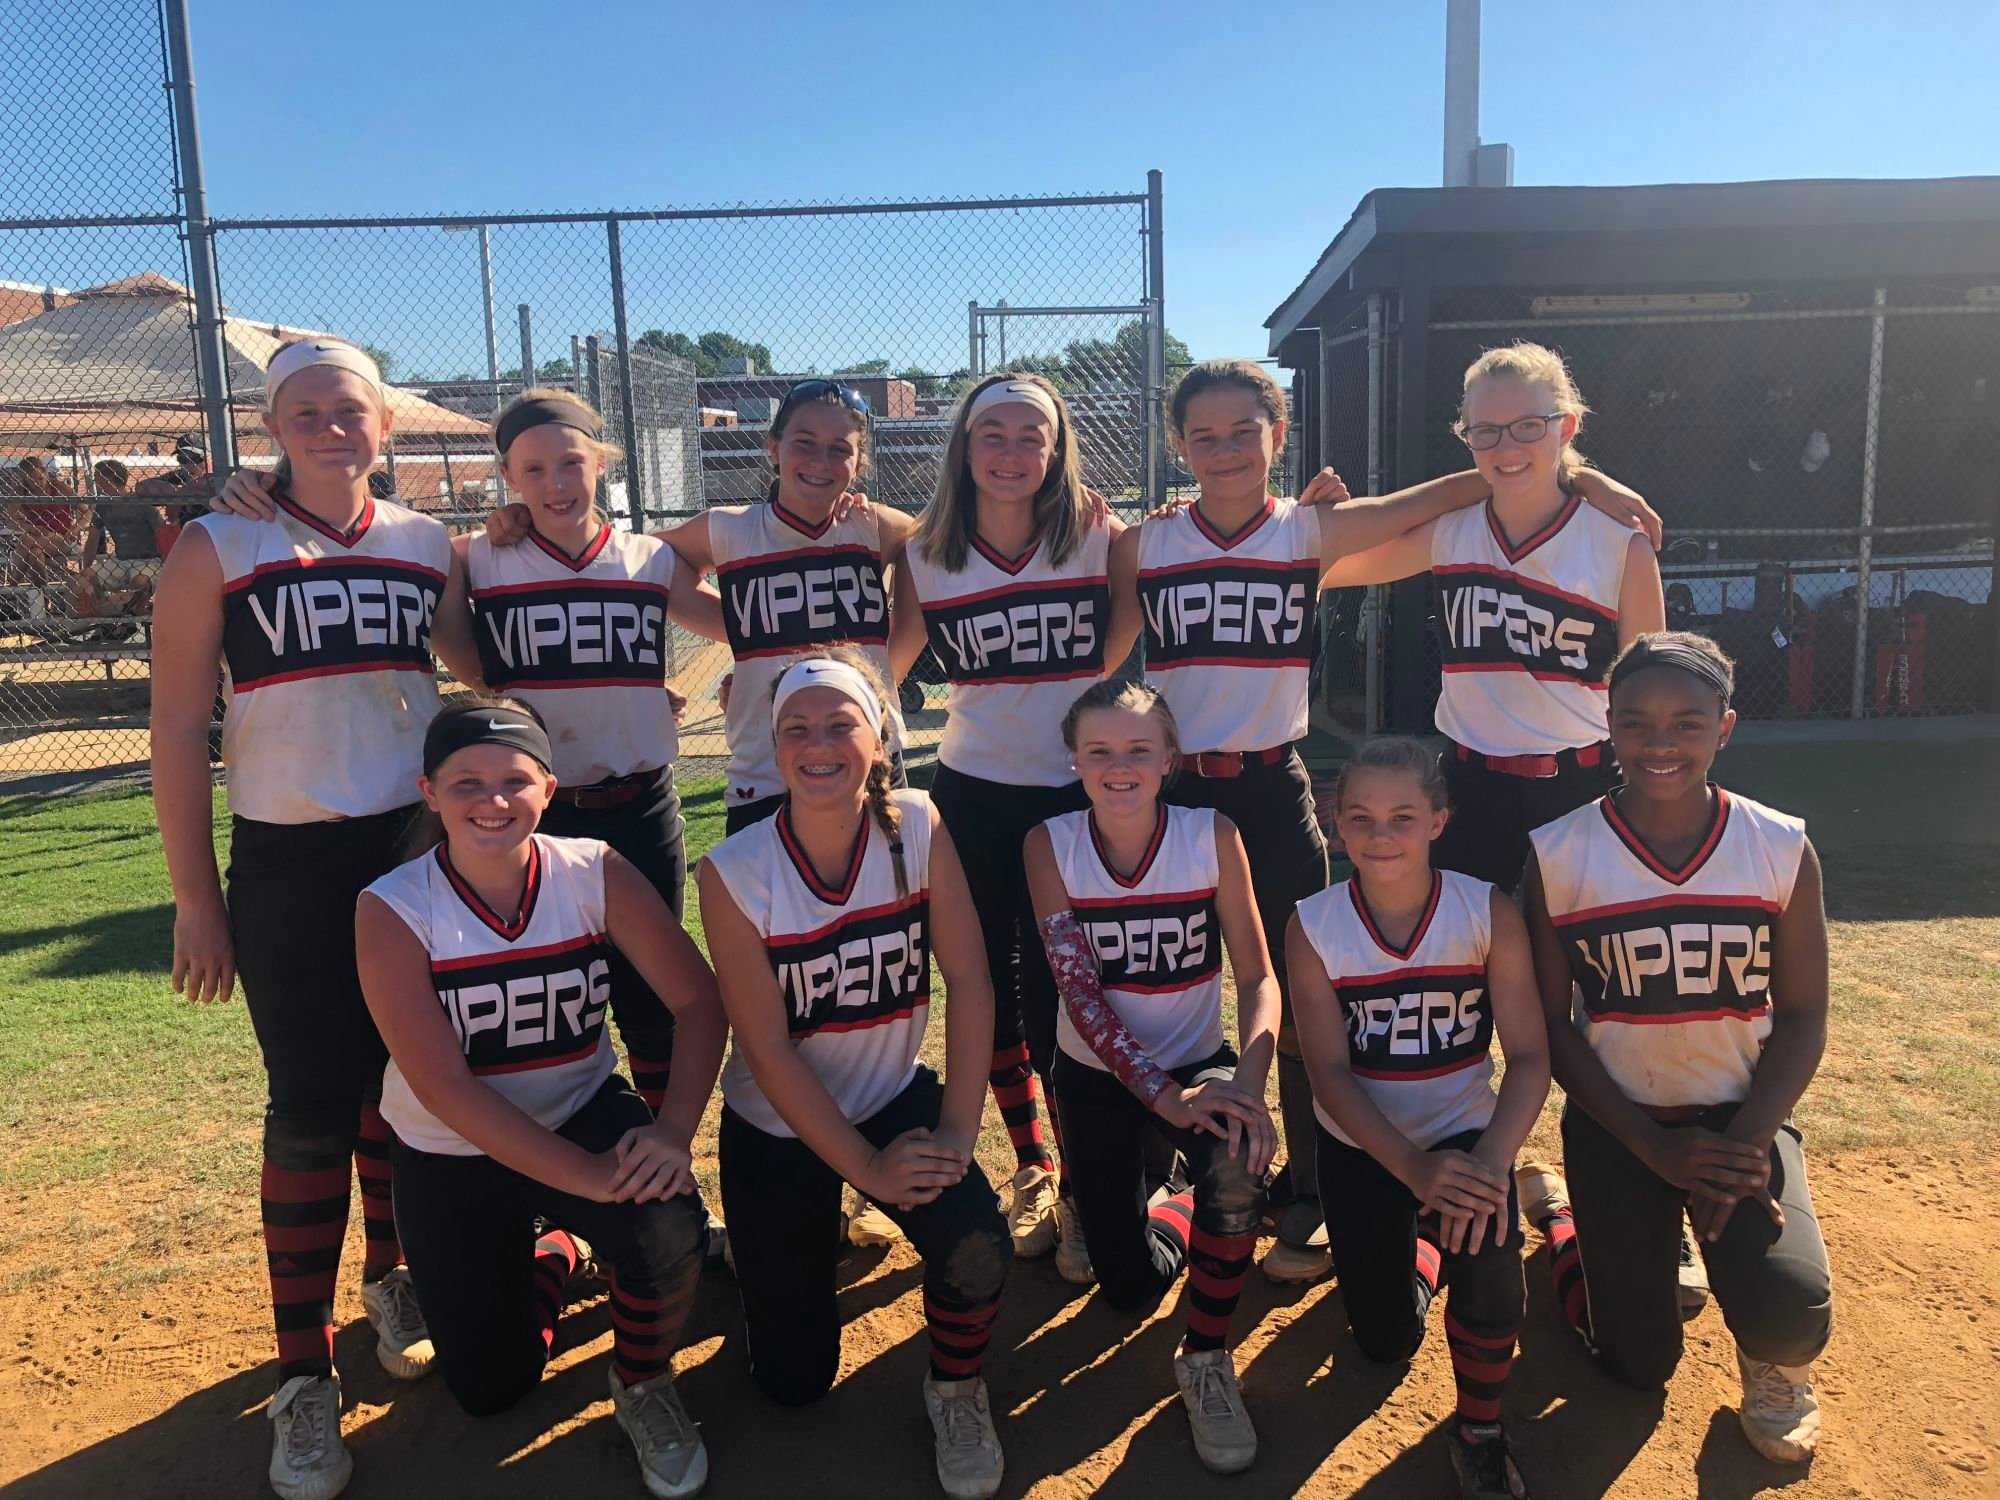 2018 Glory Finalist - Delaware Vipers Black Fastpitch